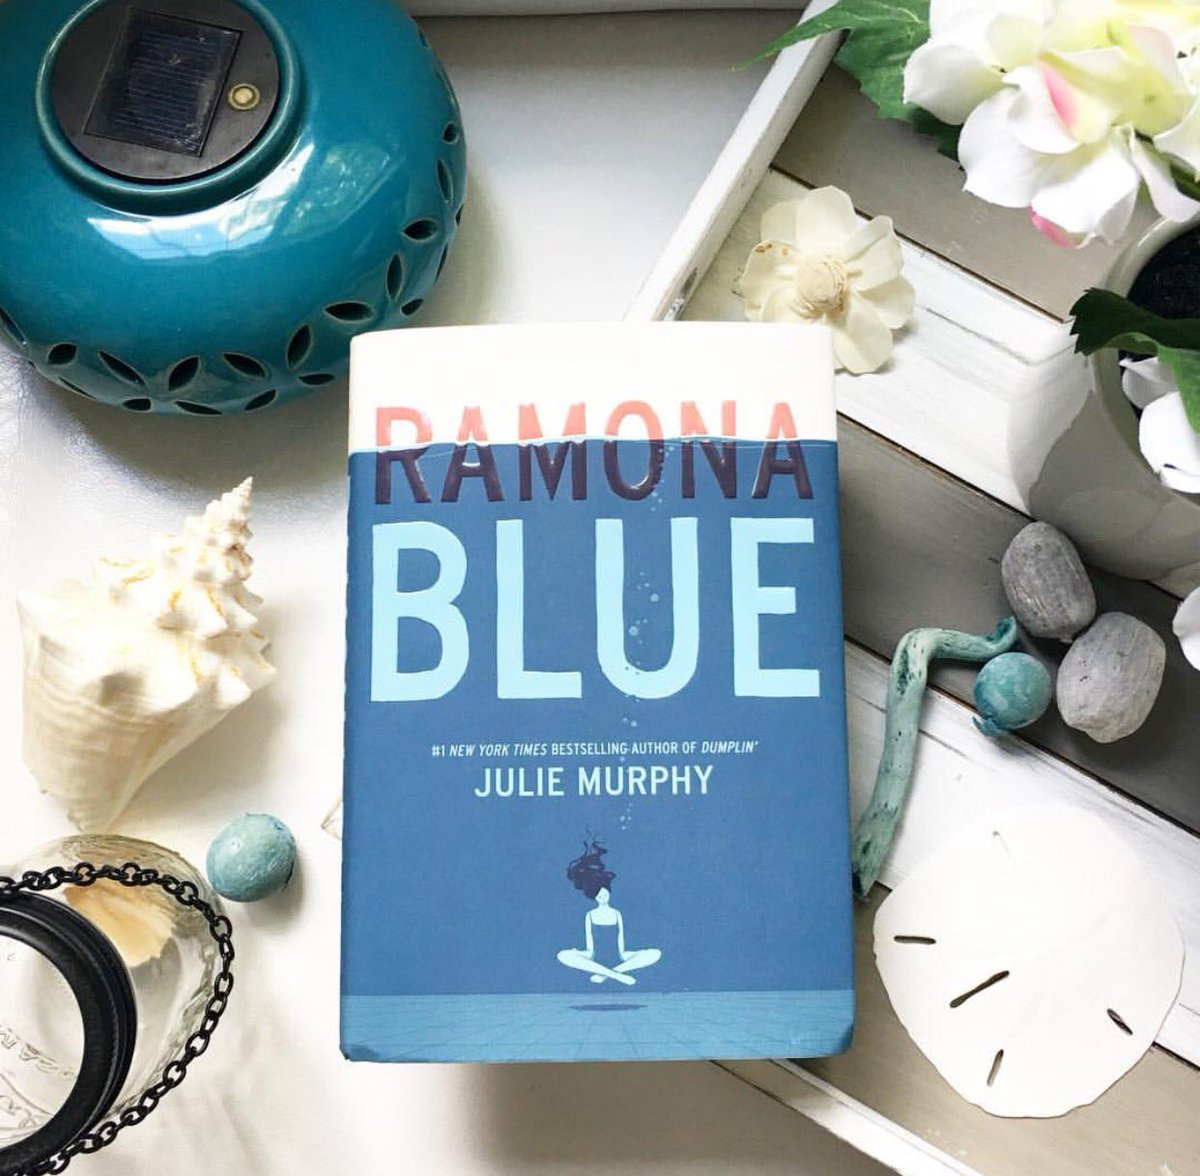 I have acquired an extra hardcover of #RamonaBlue. RT & follow for a chance to win. Ends 5/31. INT. #giveaway https://t.co/NUGcfQphae